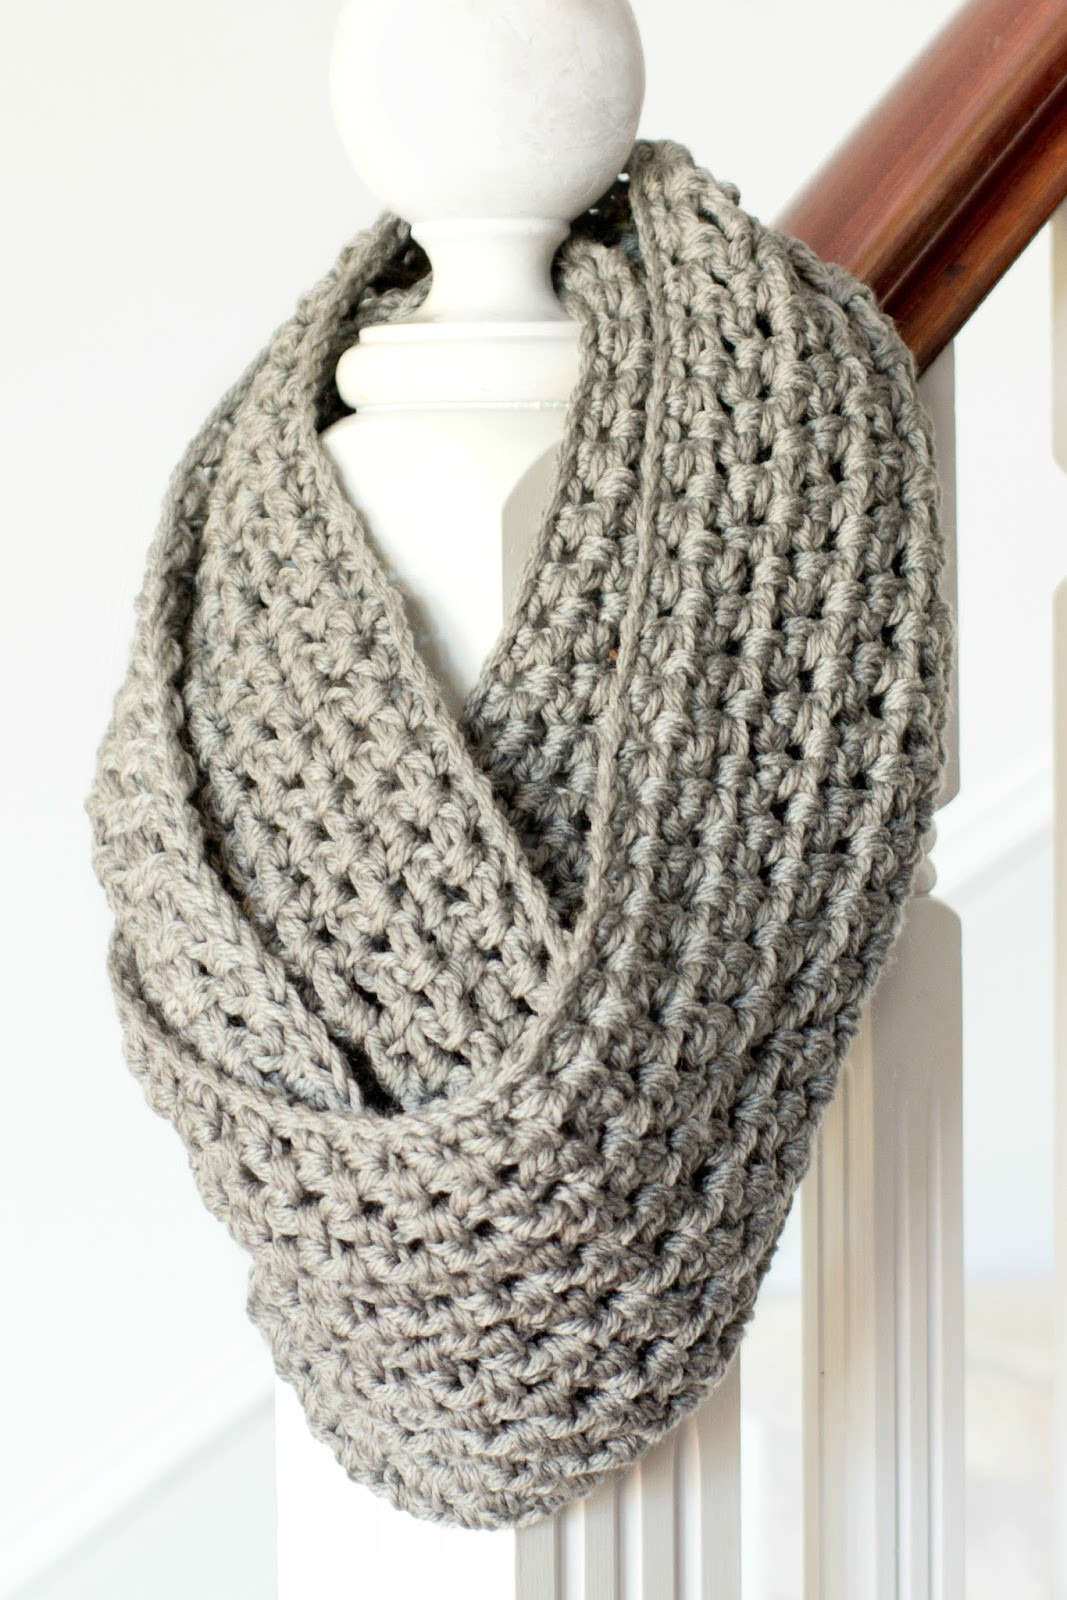 Infinity Scarf Crochet Pattern Inspirational 42 Fun and Cozy Diy Scarves Crafts to Make Of Fresh 49 Ideas Infinity Scarf Crochet Pattern